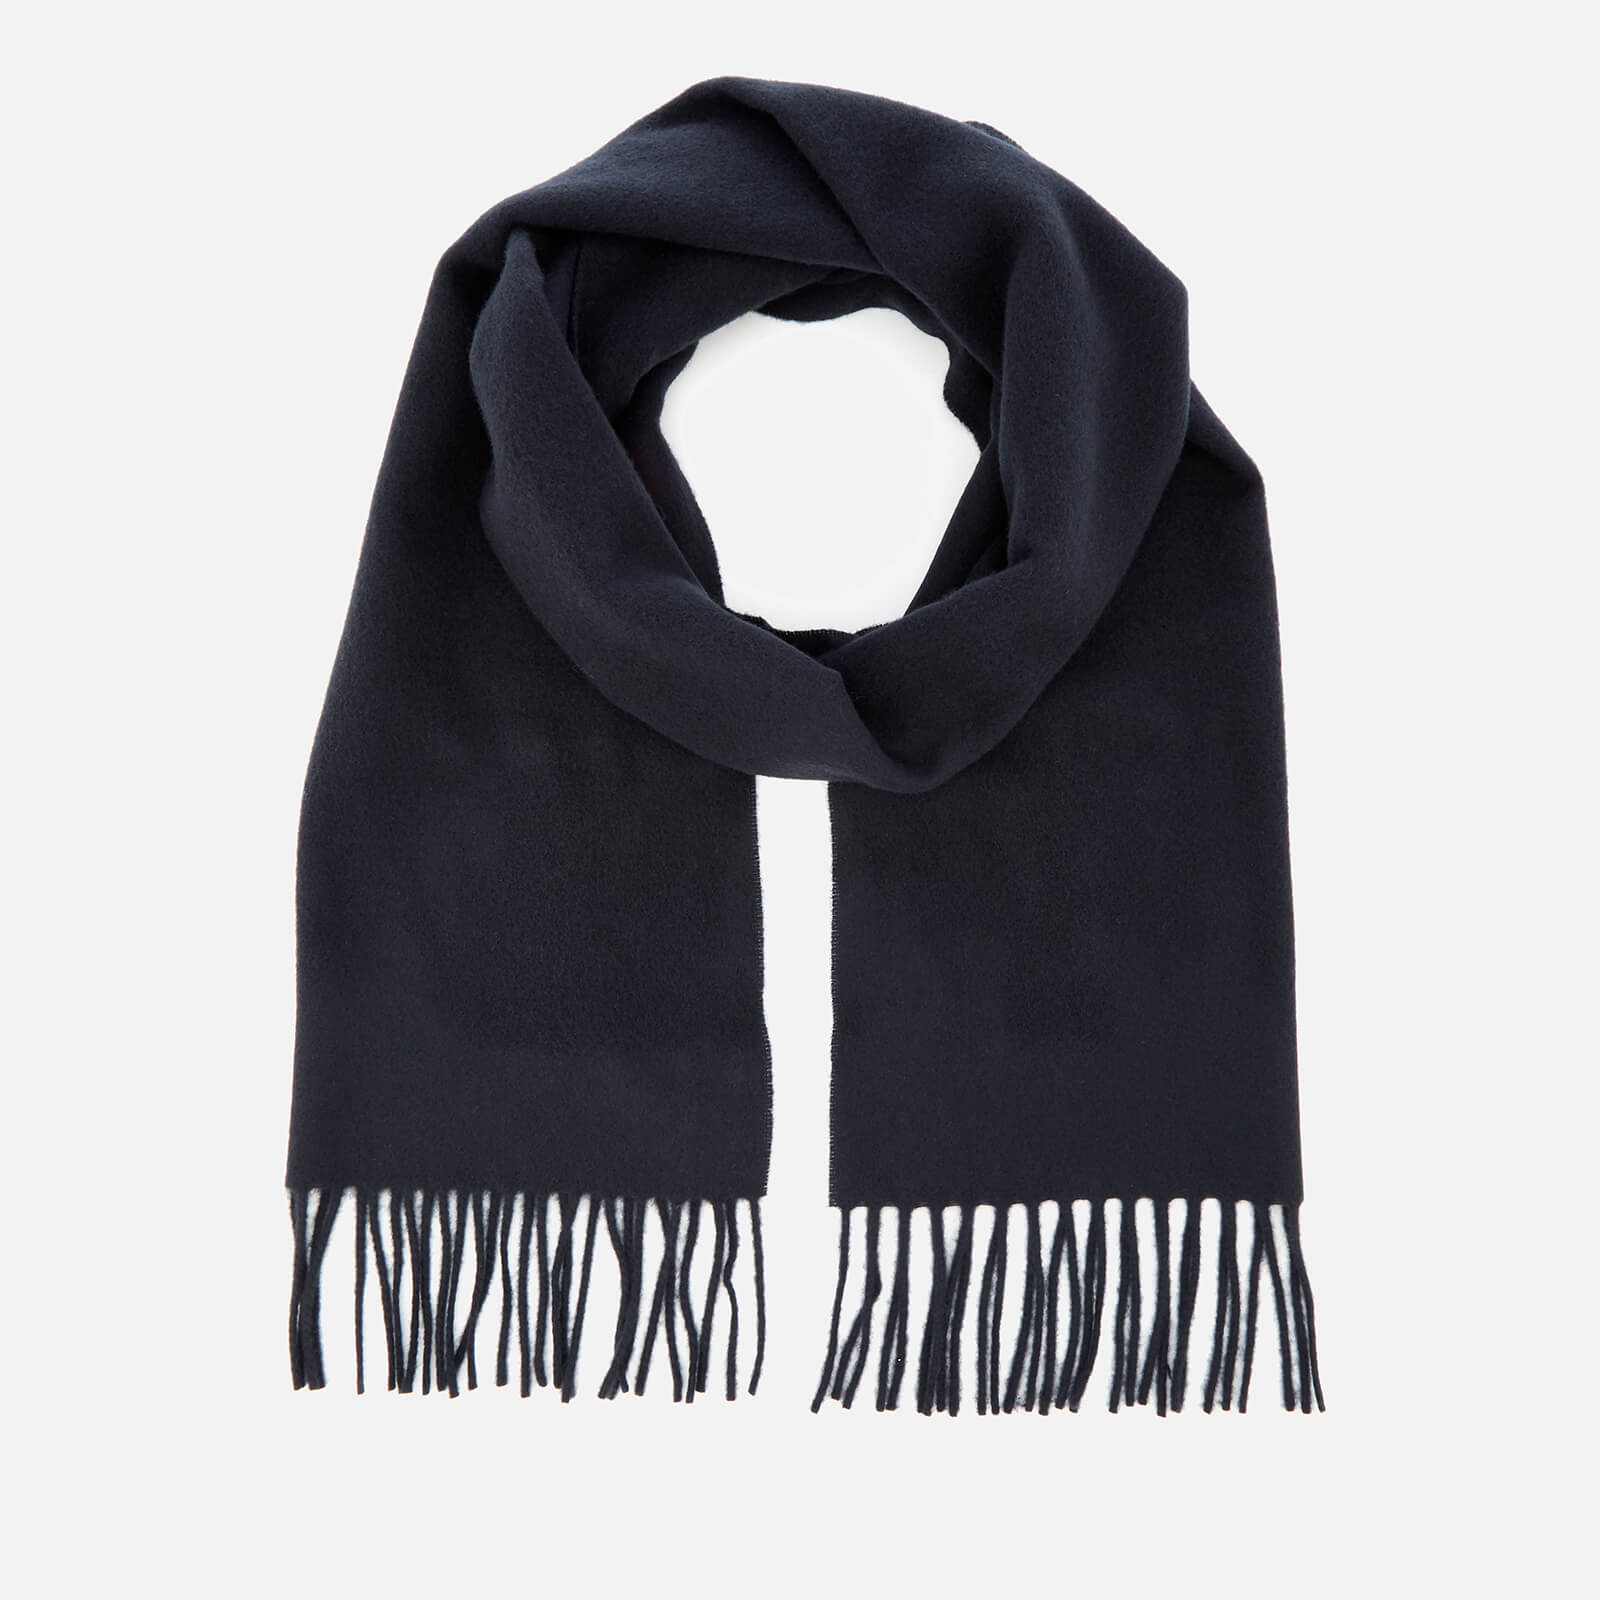 9eaa3e6f74c A.P.C. Men s Echarpe Remy Scarf - Marine - Free UK Delivery over £50